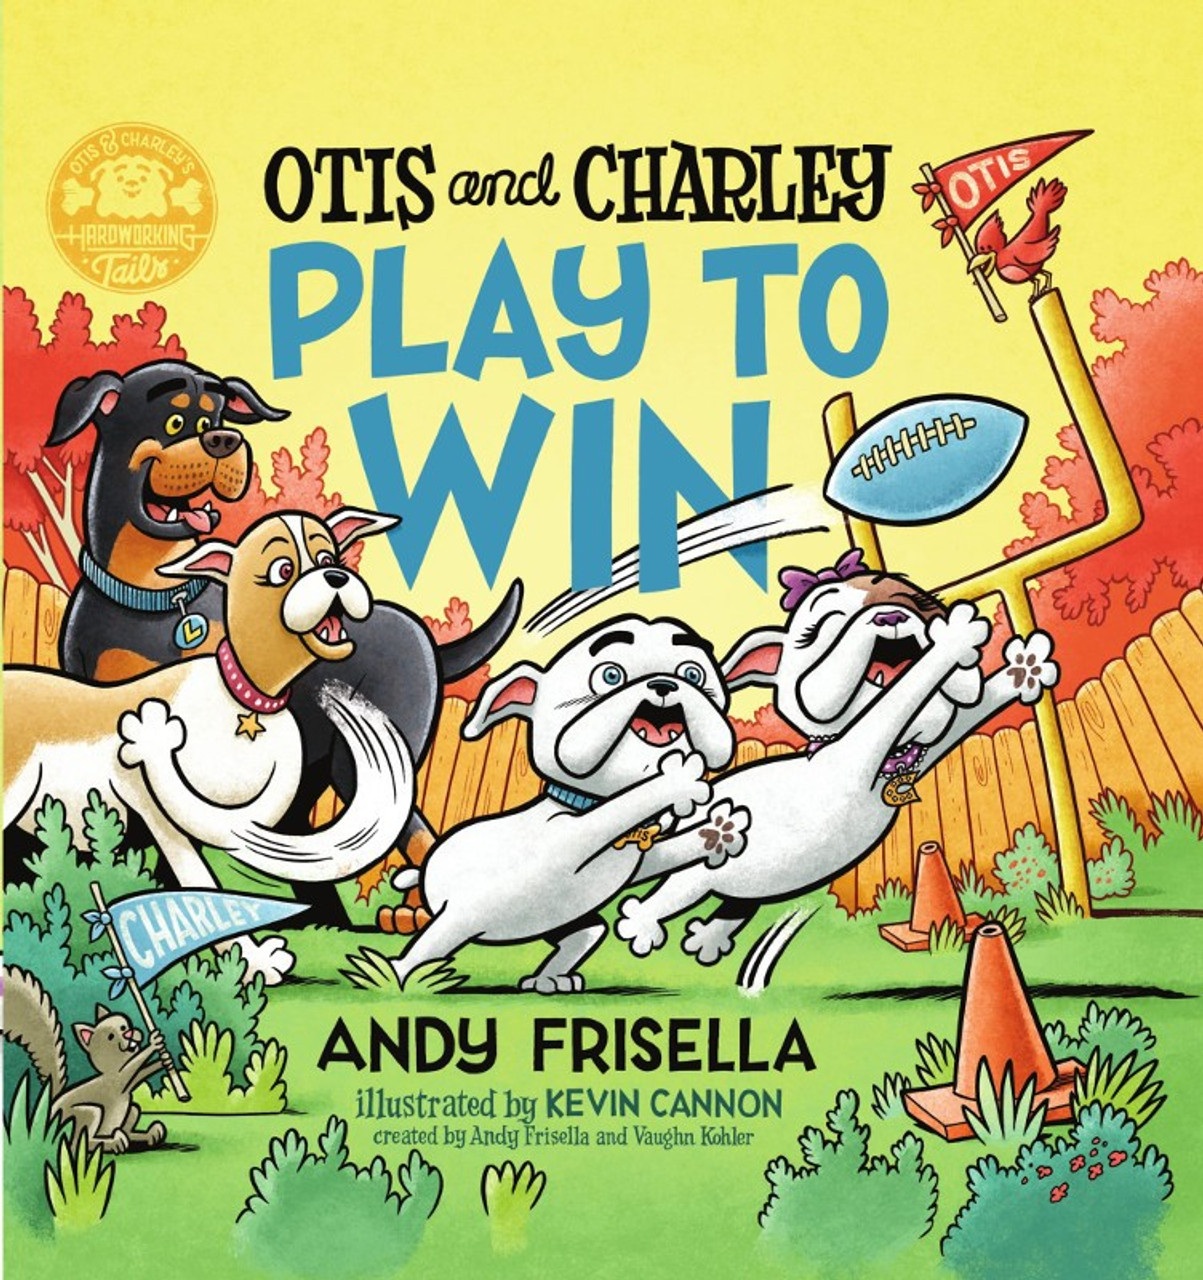 Otis and Charley Play to Win